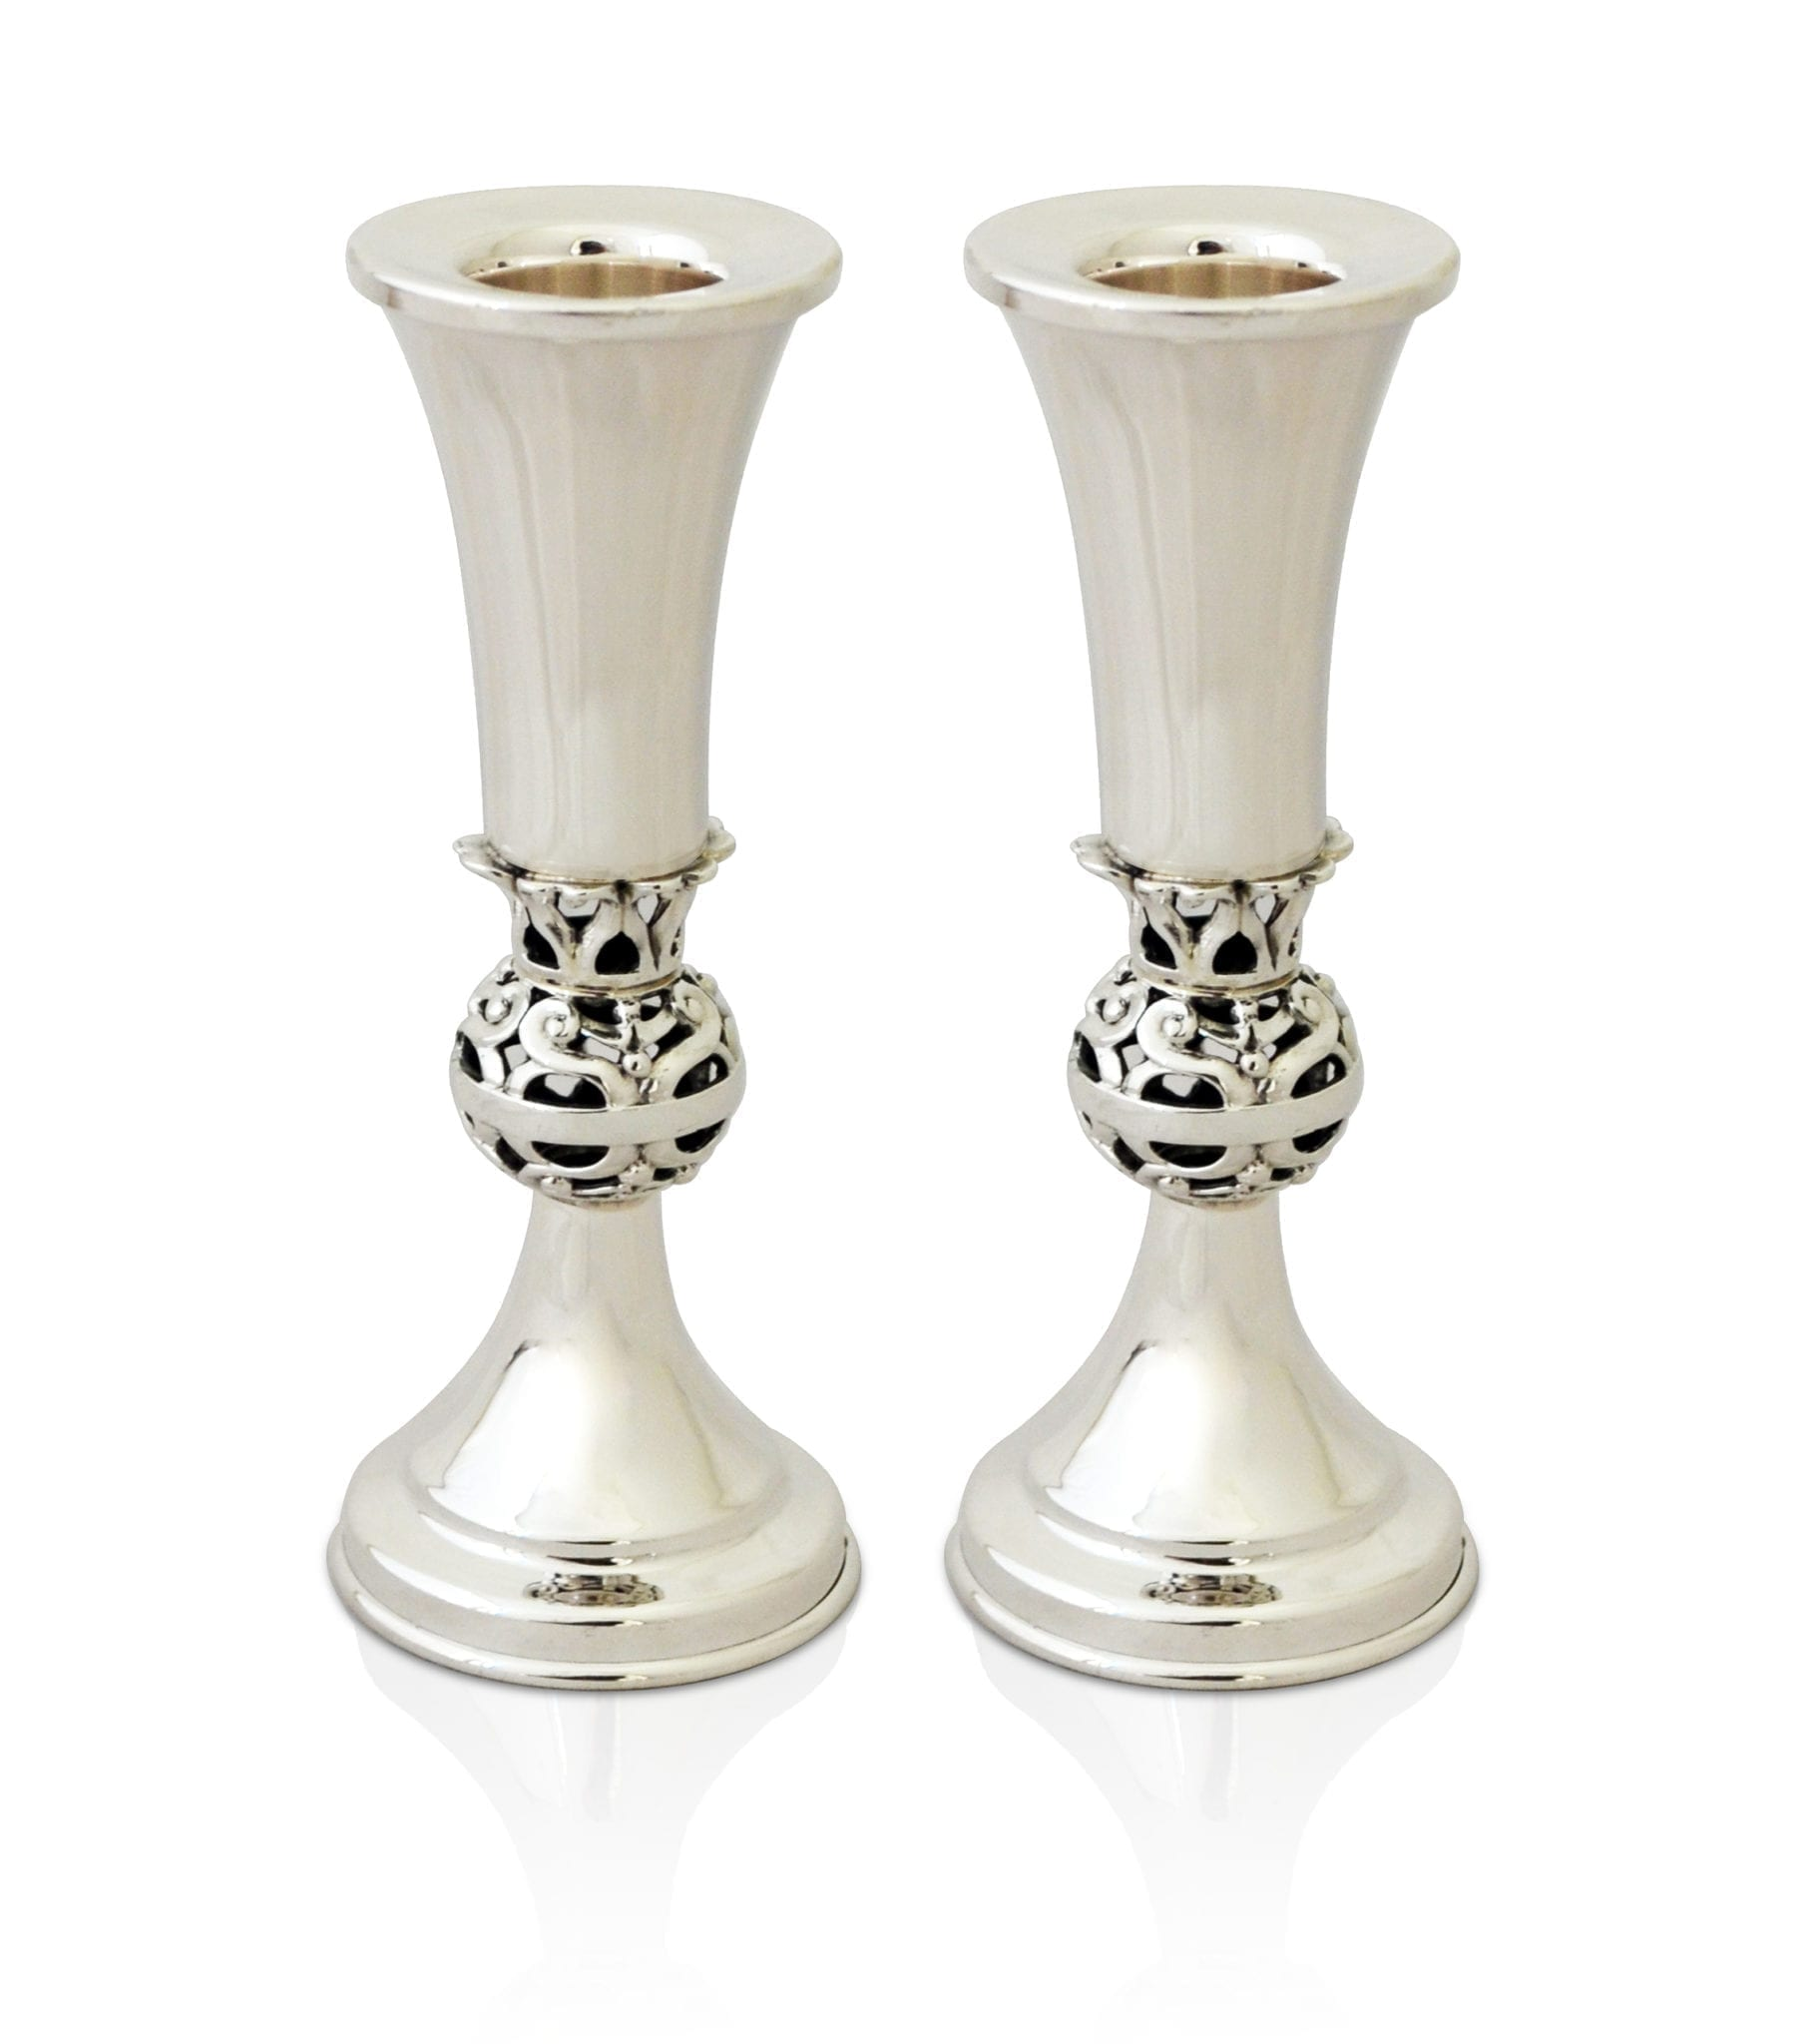 Petite, modern sterling silver candlesticks. Shabbat Judaica made in Israel